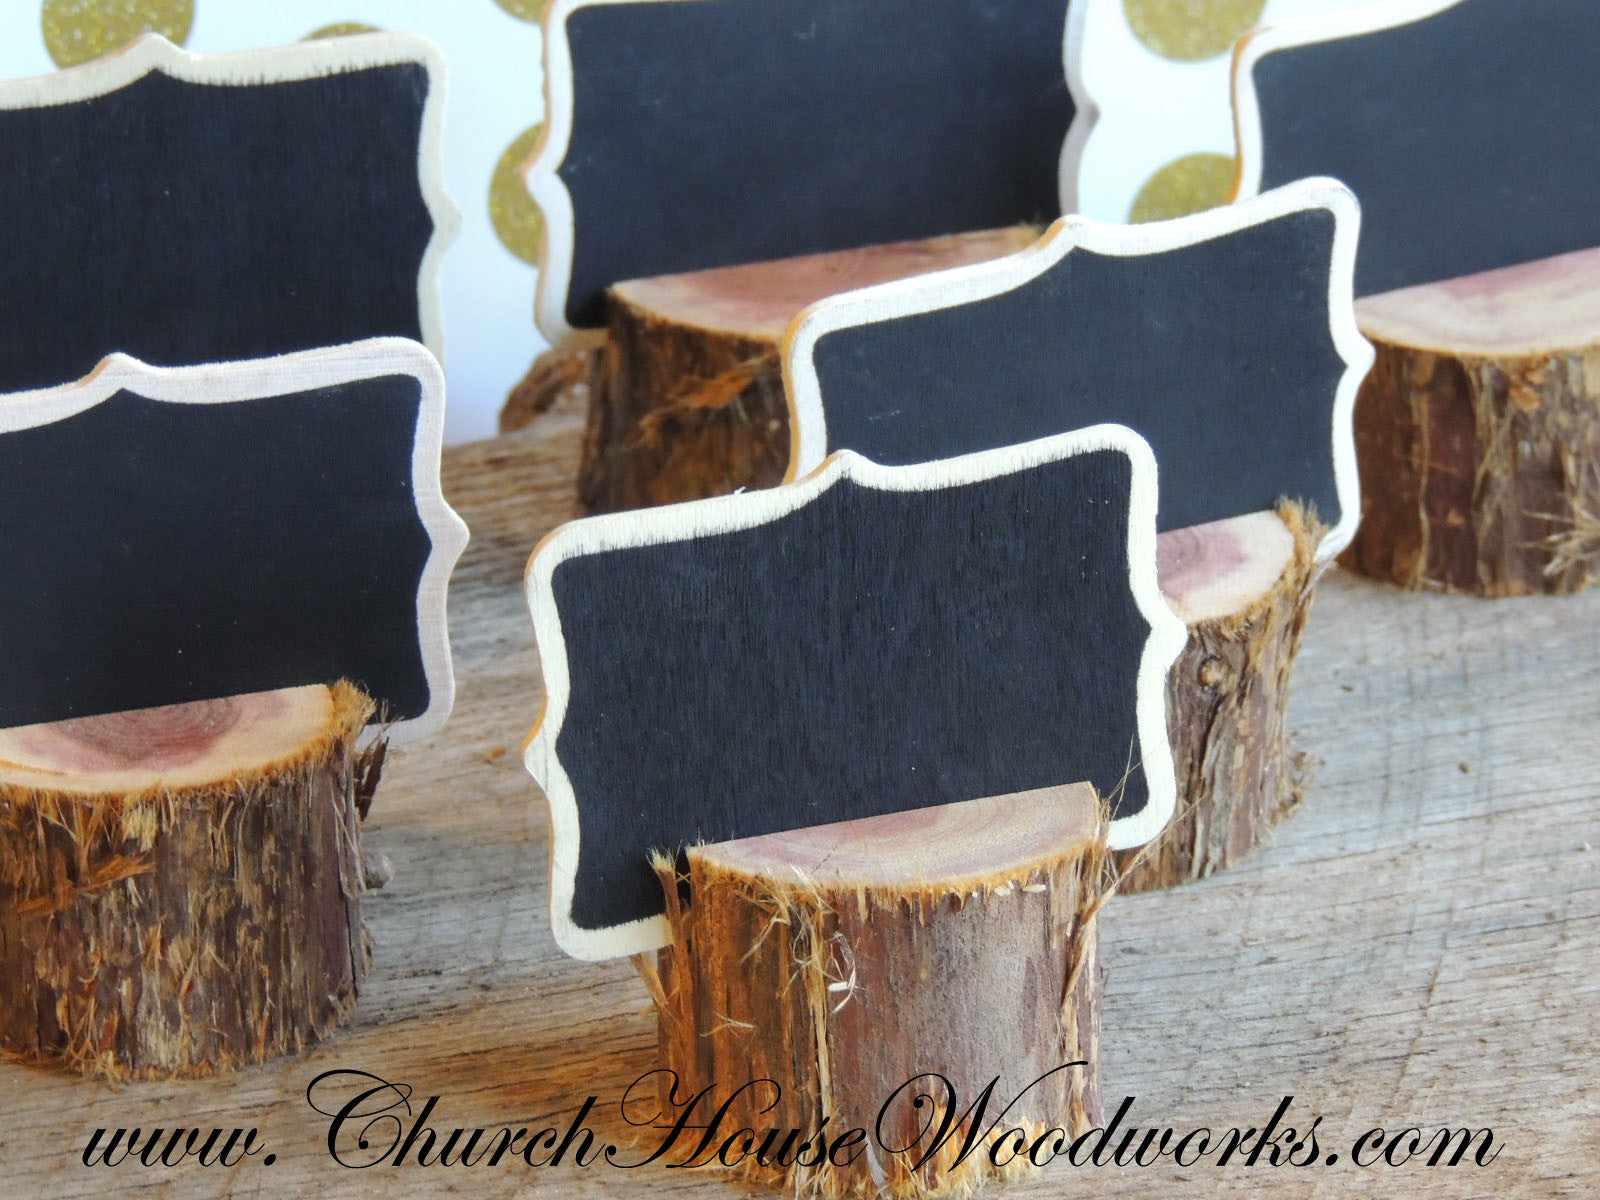 boho chic rustic cedar place card holders tribal